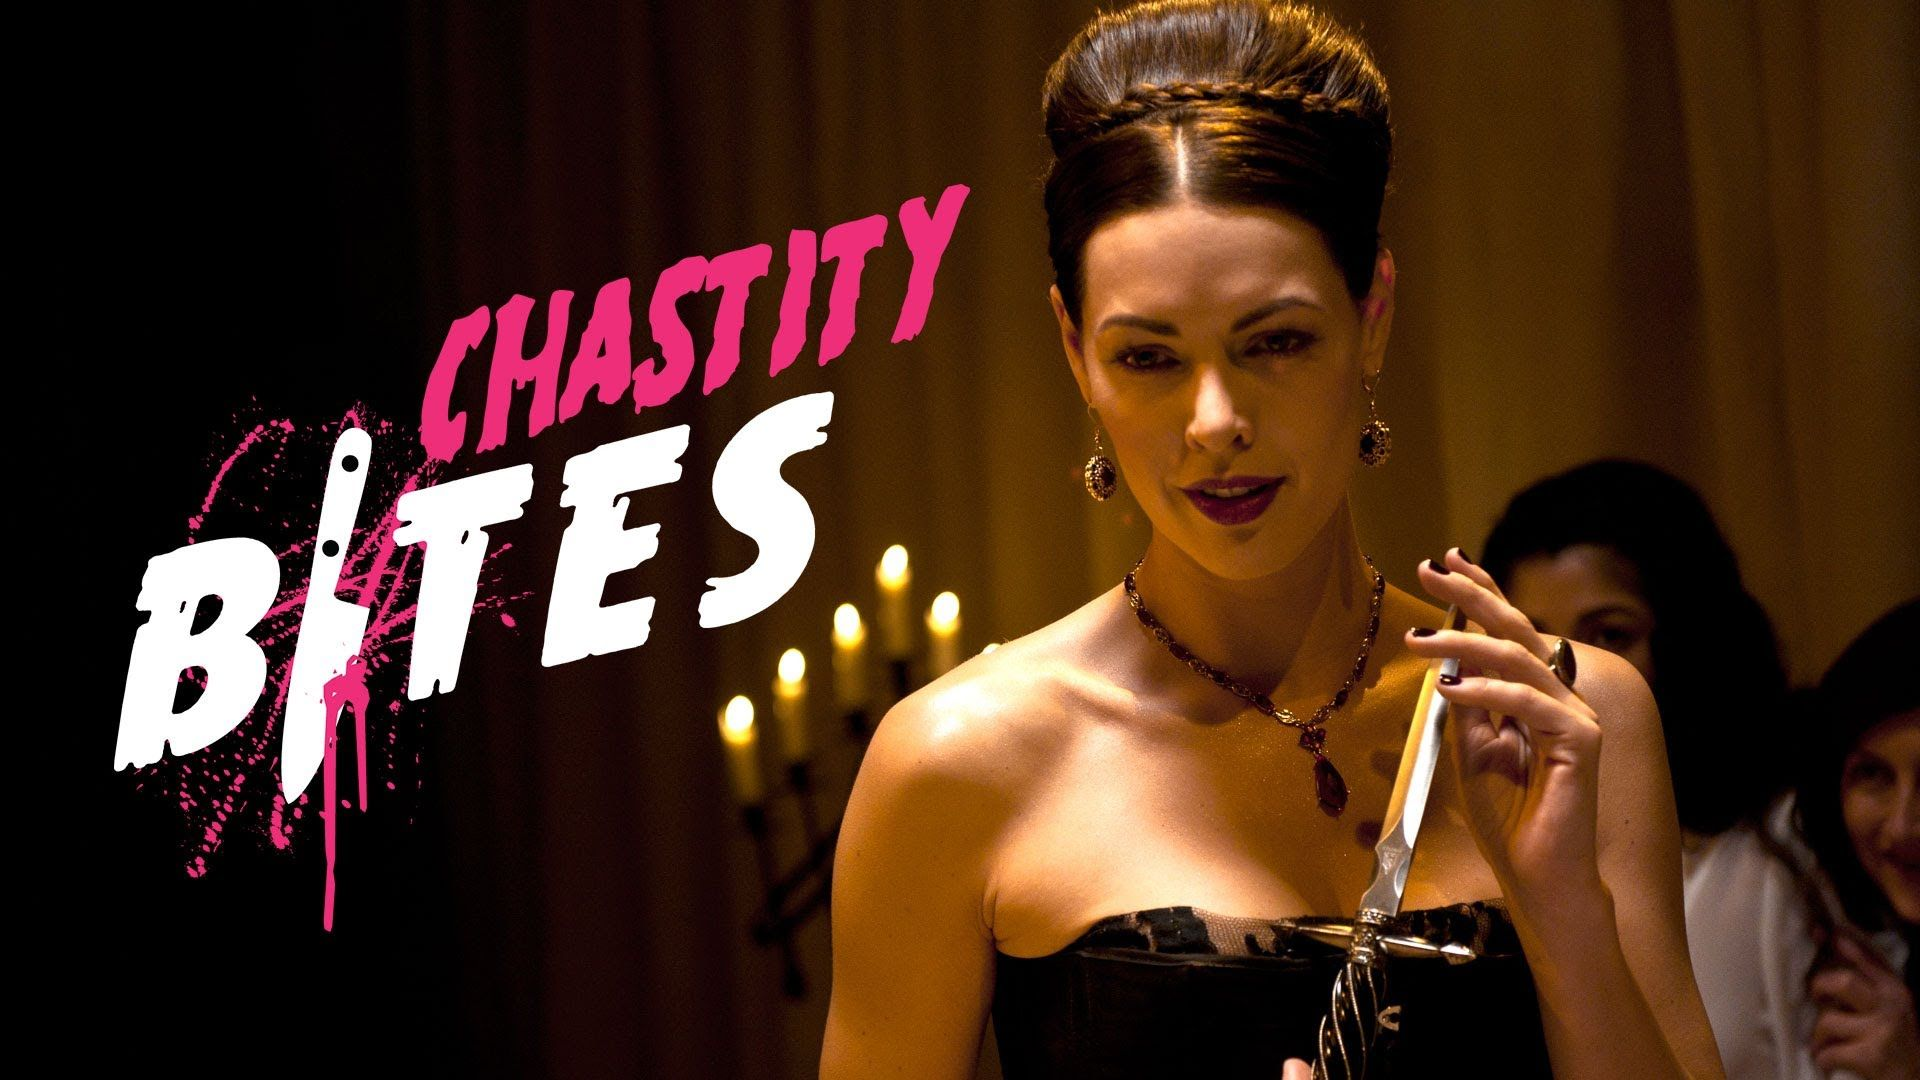 Chastity Bites Official Trailer My Mom S Cousin Directed This Movie Elizabeth Bathory Countess Elizabeth Bathory Best Films To Watch